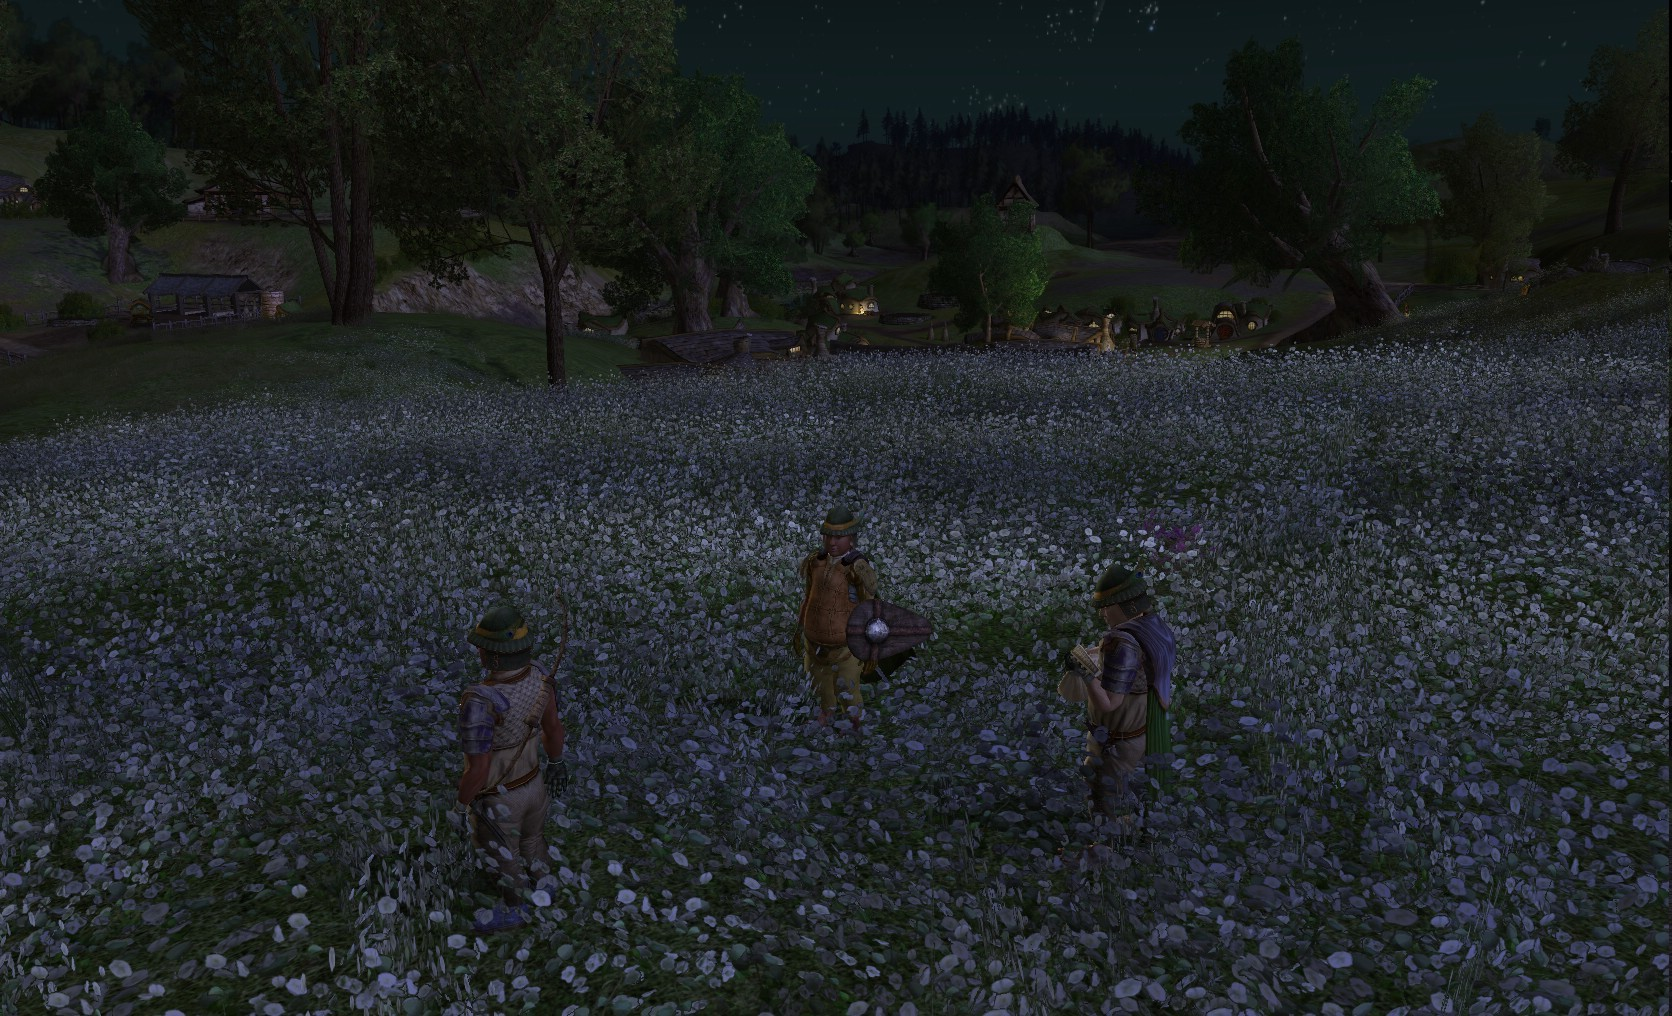 Lord of the Rings Online - Frolicking Hobbits at Midnight